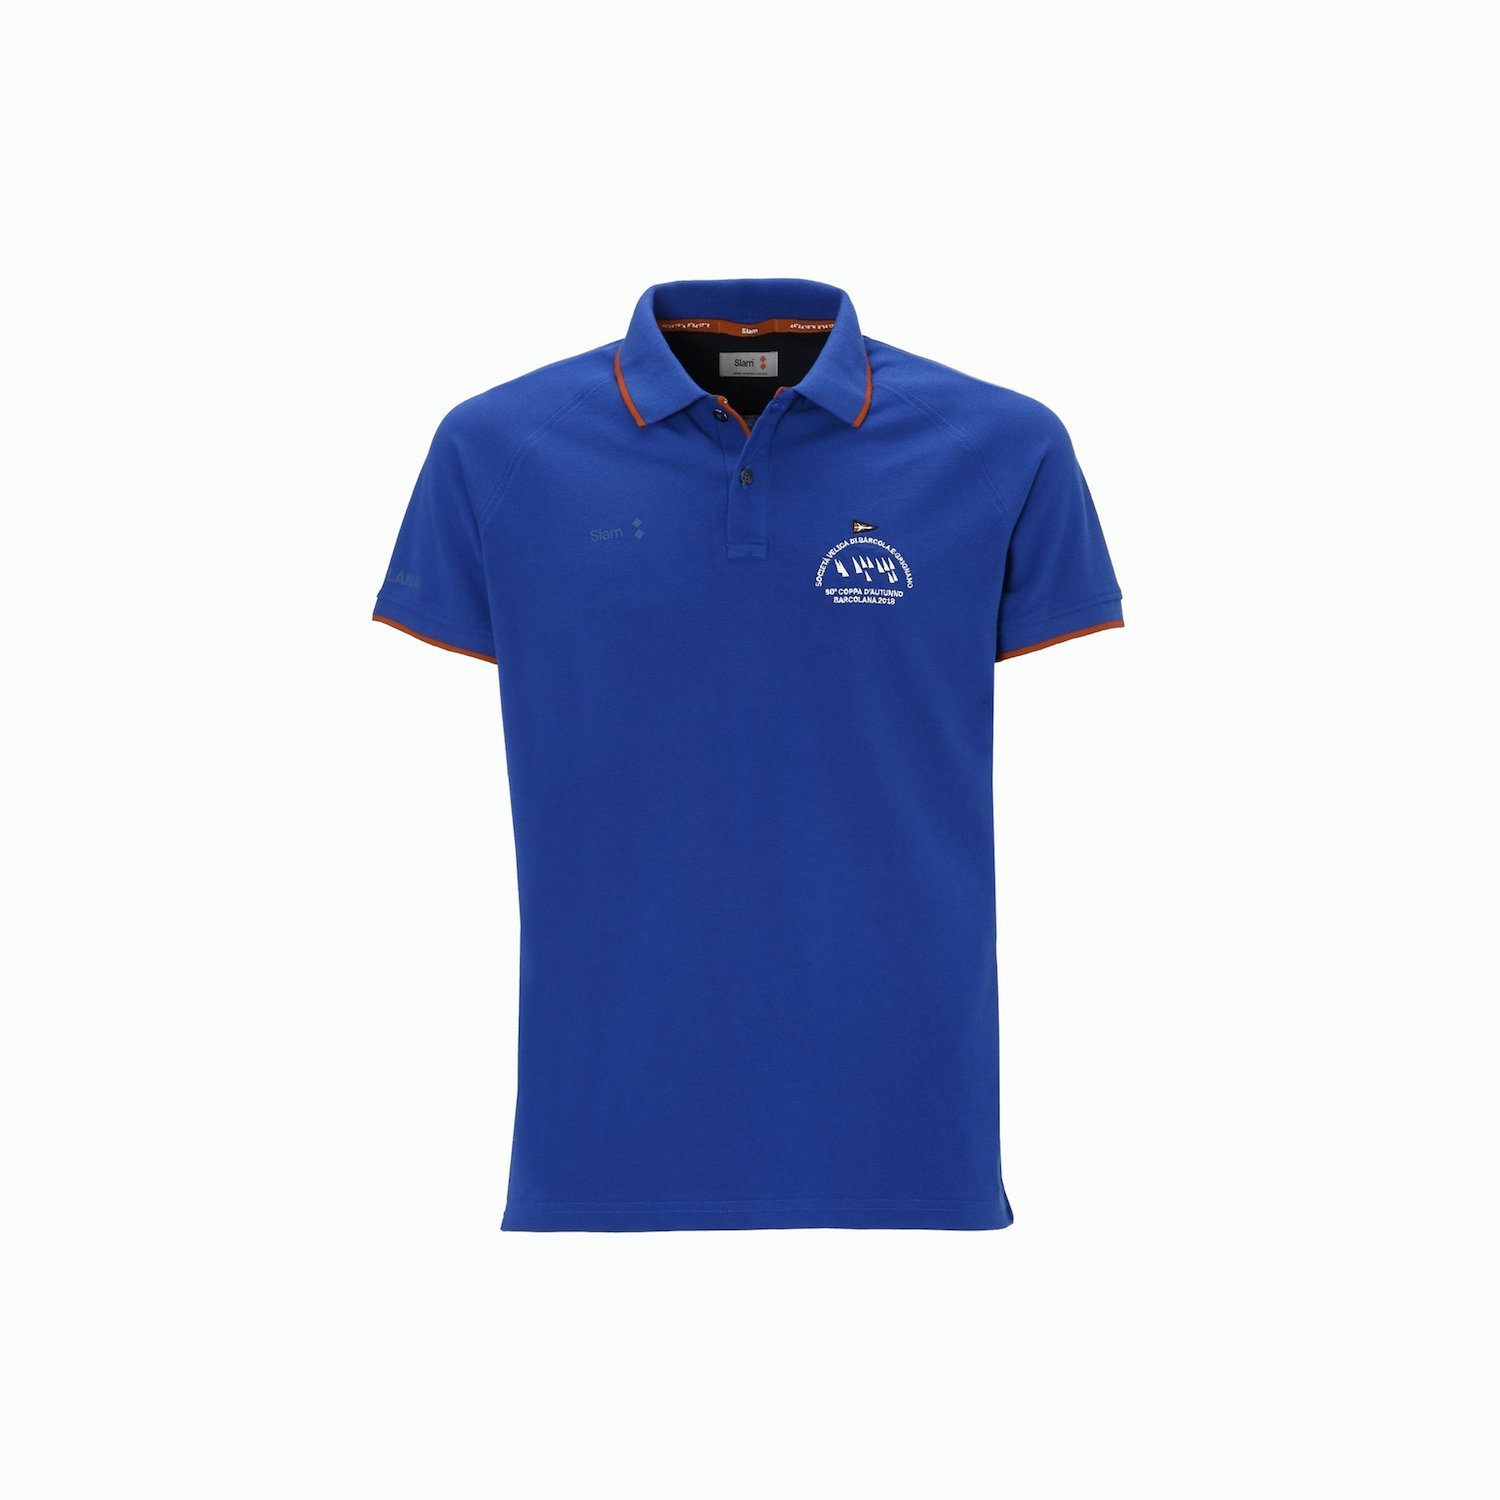 B50 men's polo shirt - Marine Blue